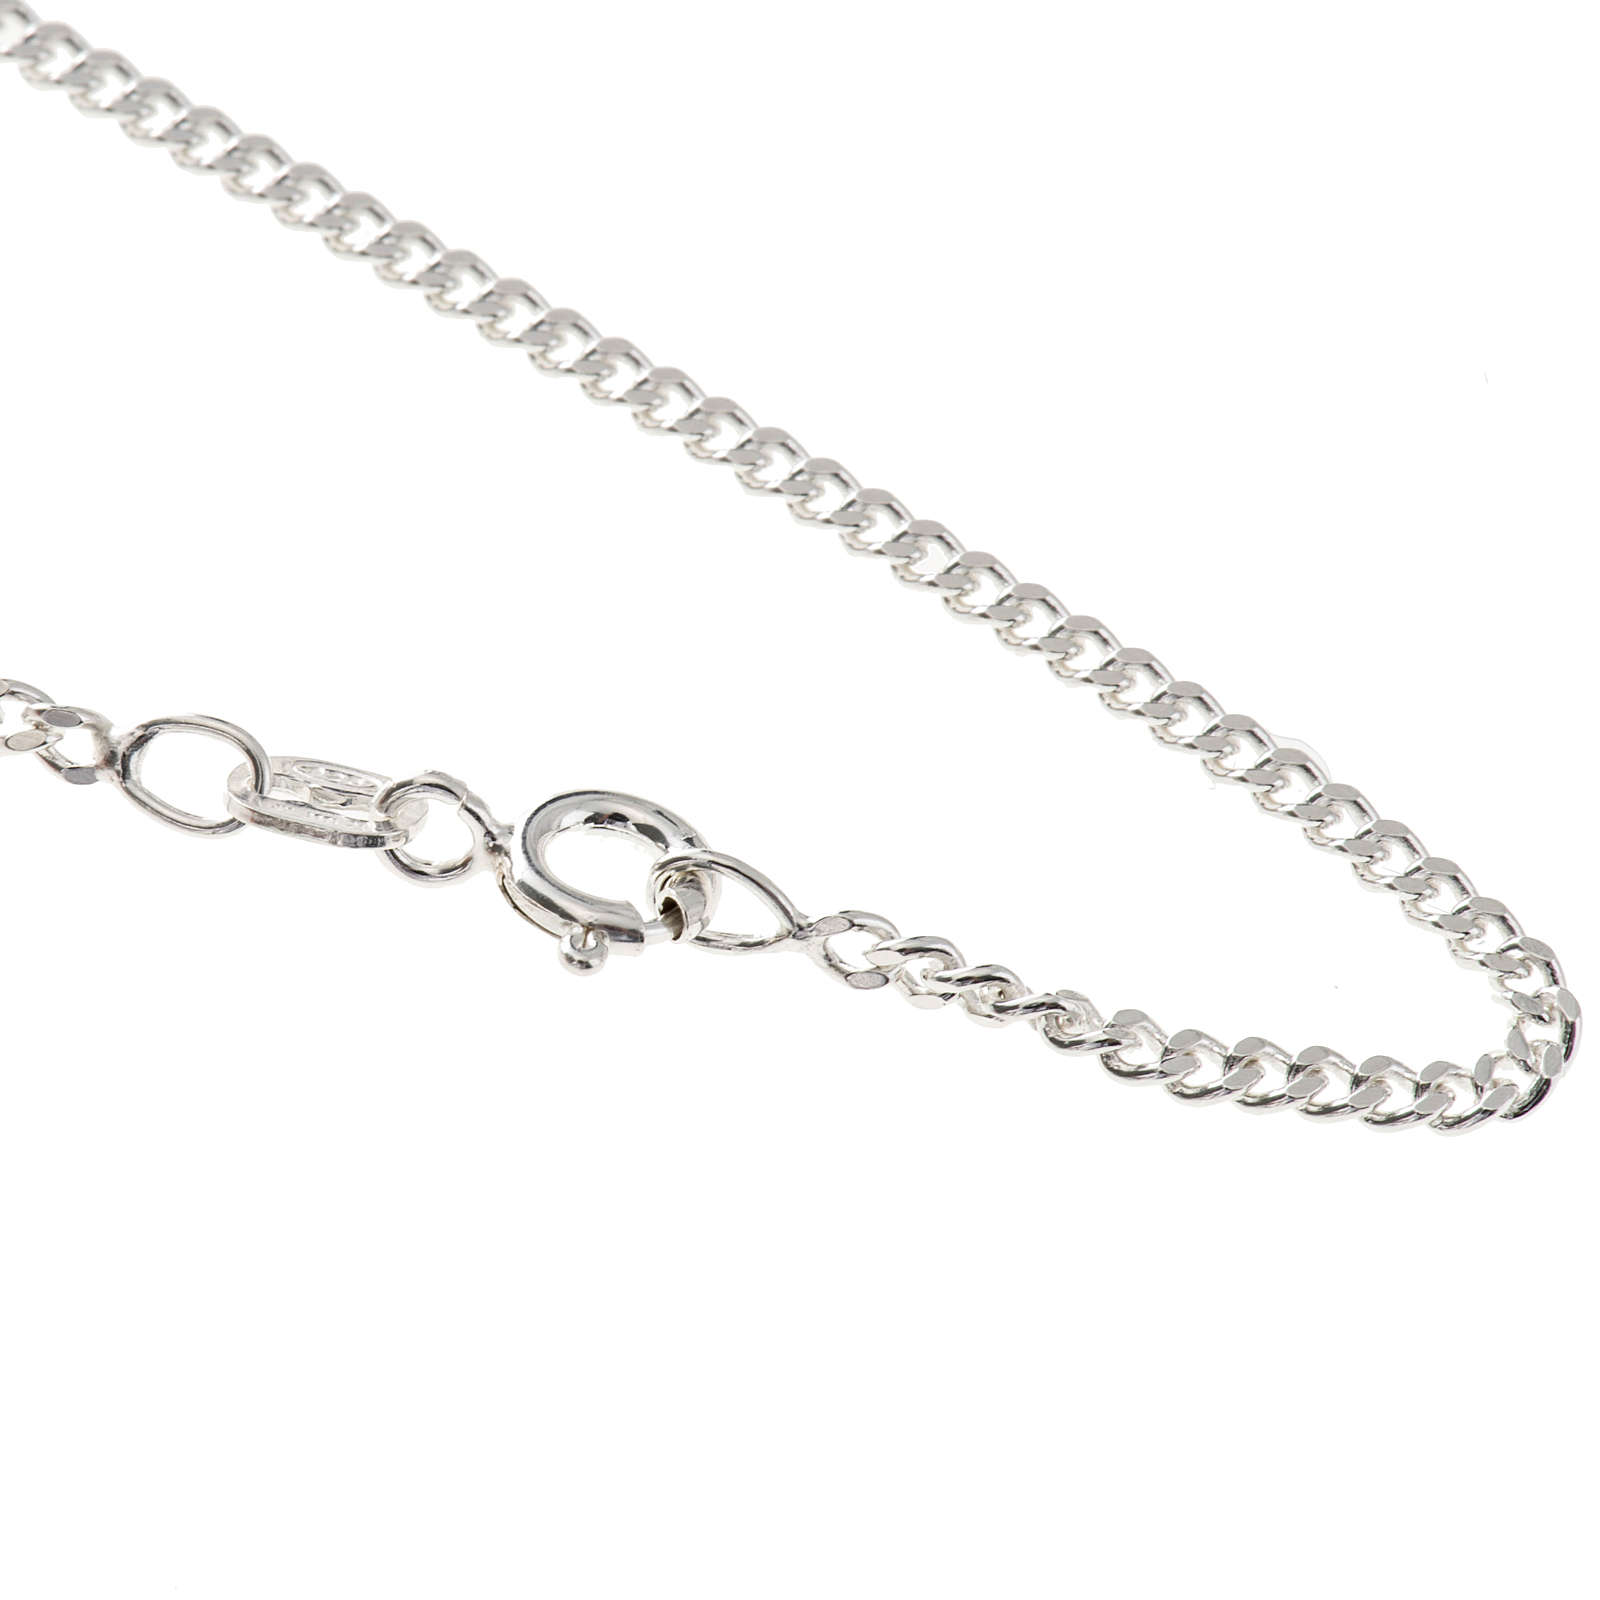 Grumetta chain in sterling silver 50cm 4